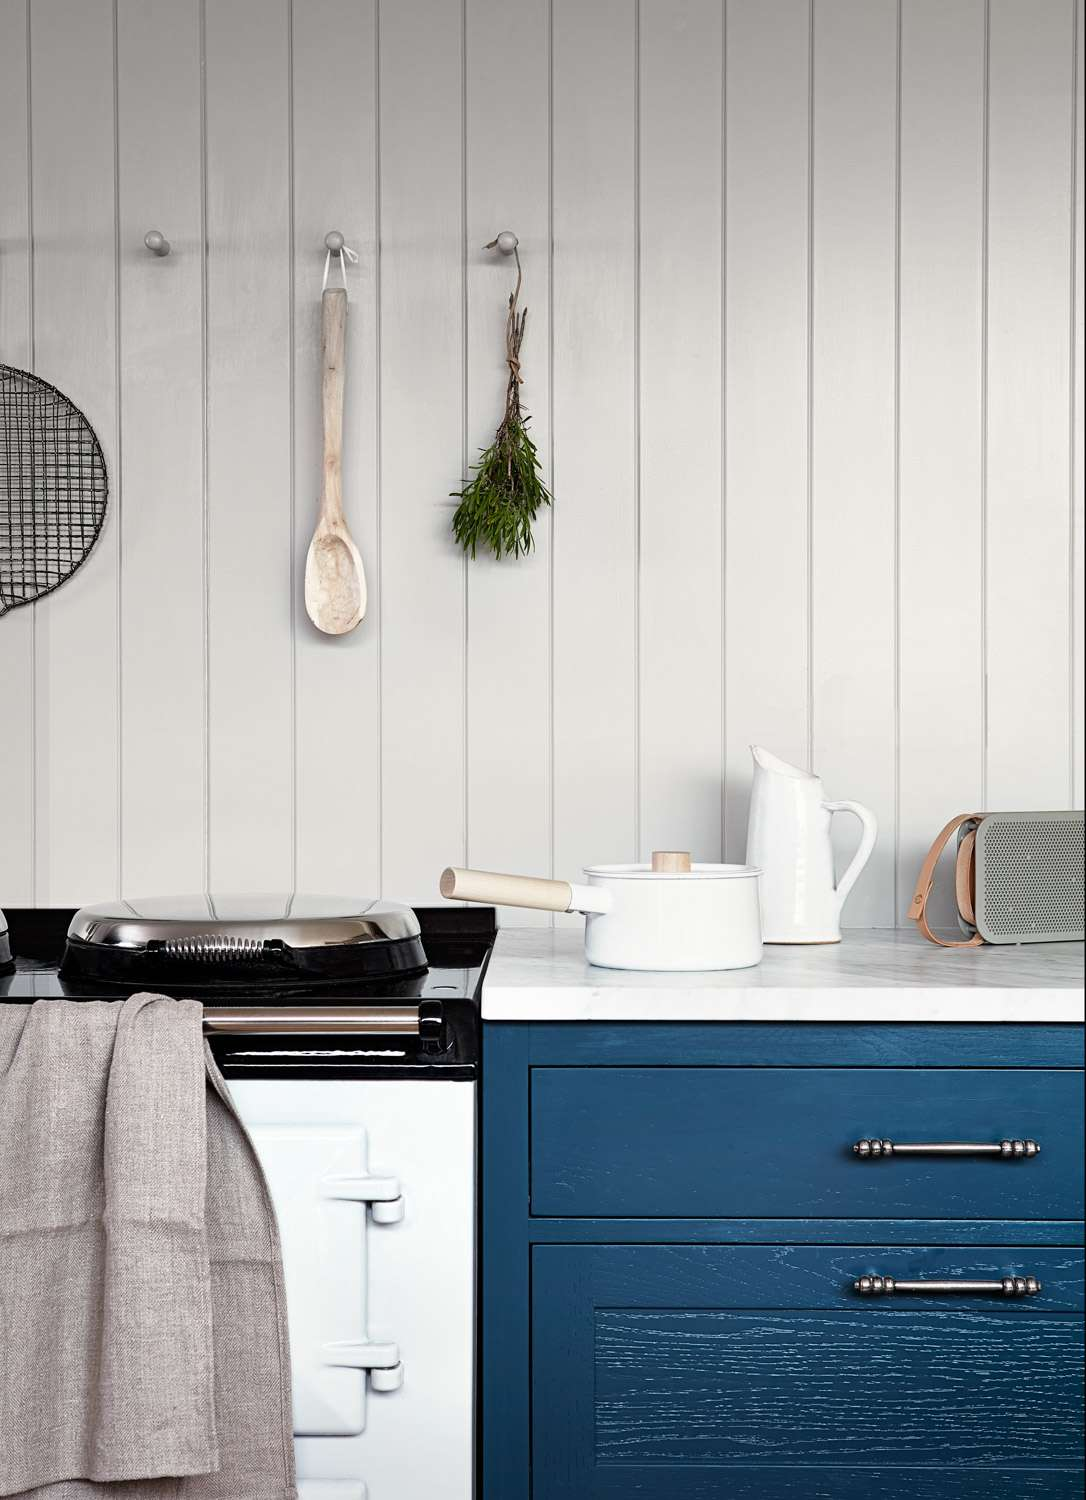 What is linen - Linen Towel on a stove top